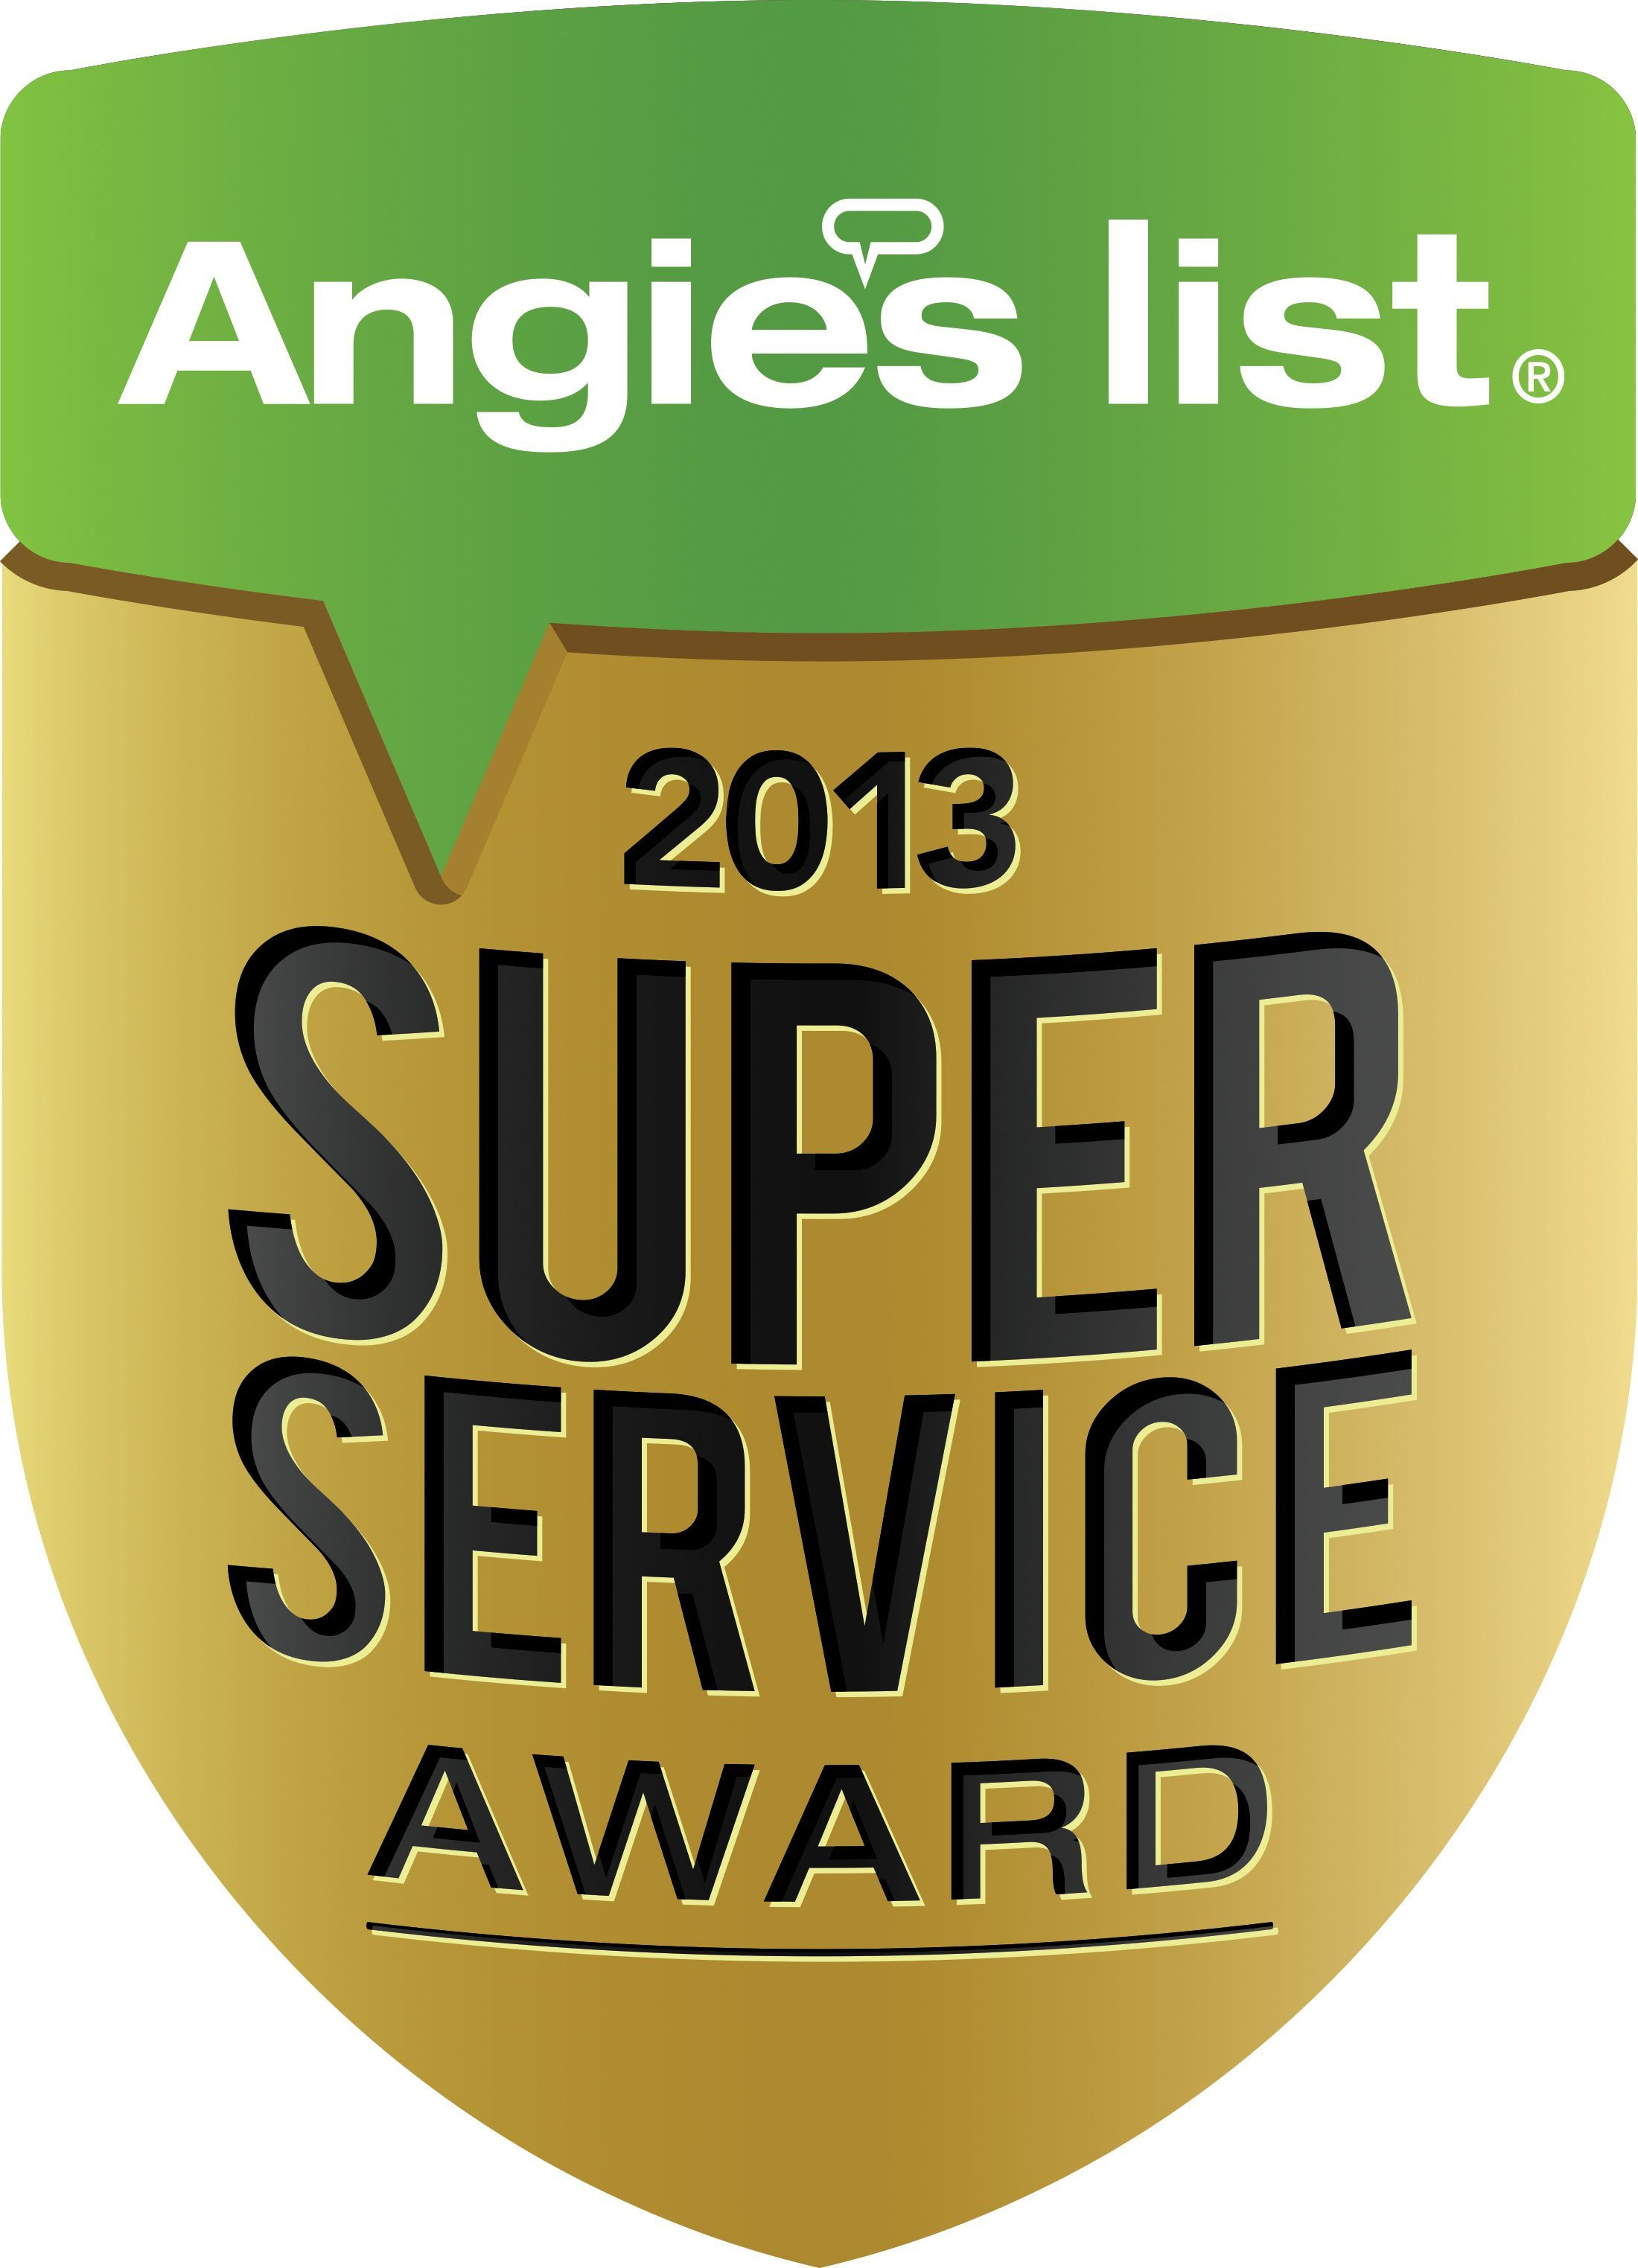 Thank you FTS satisfied customers! Service awards